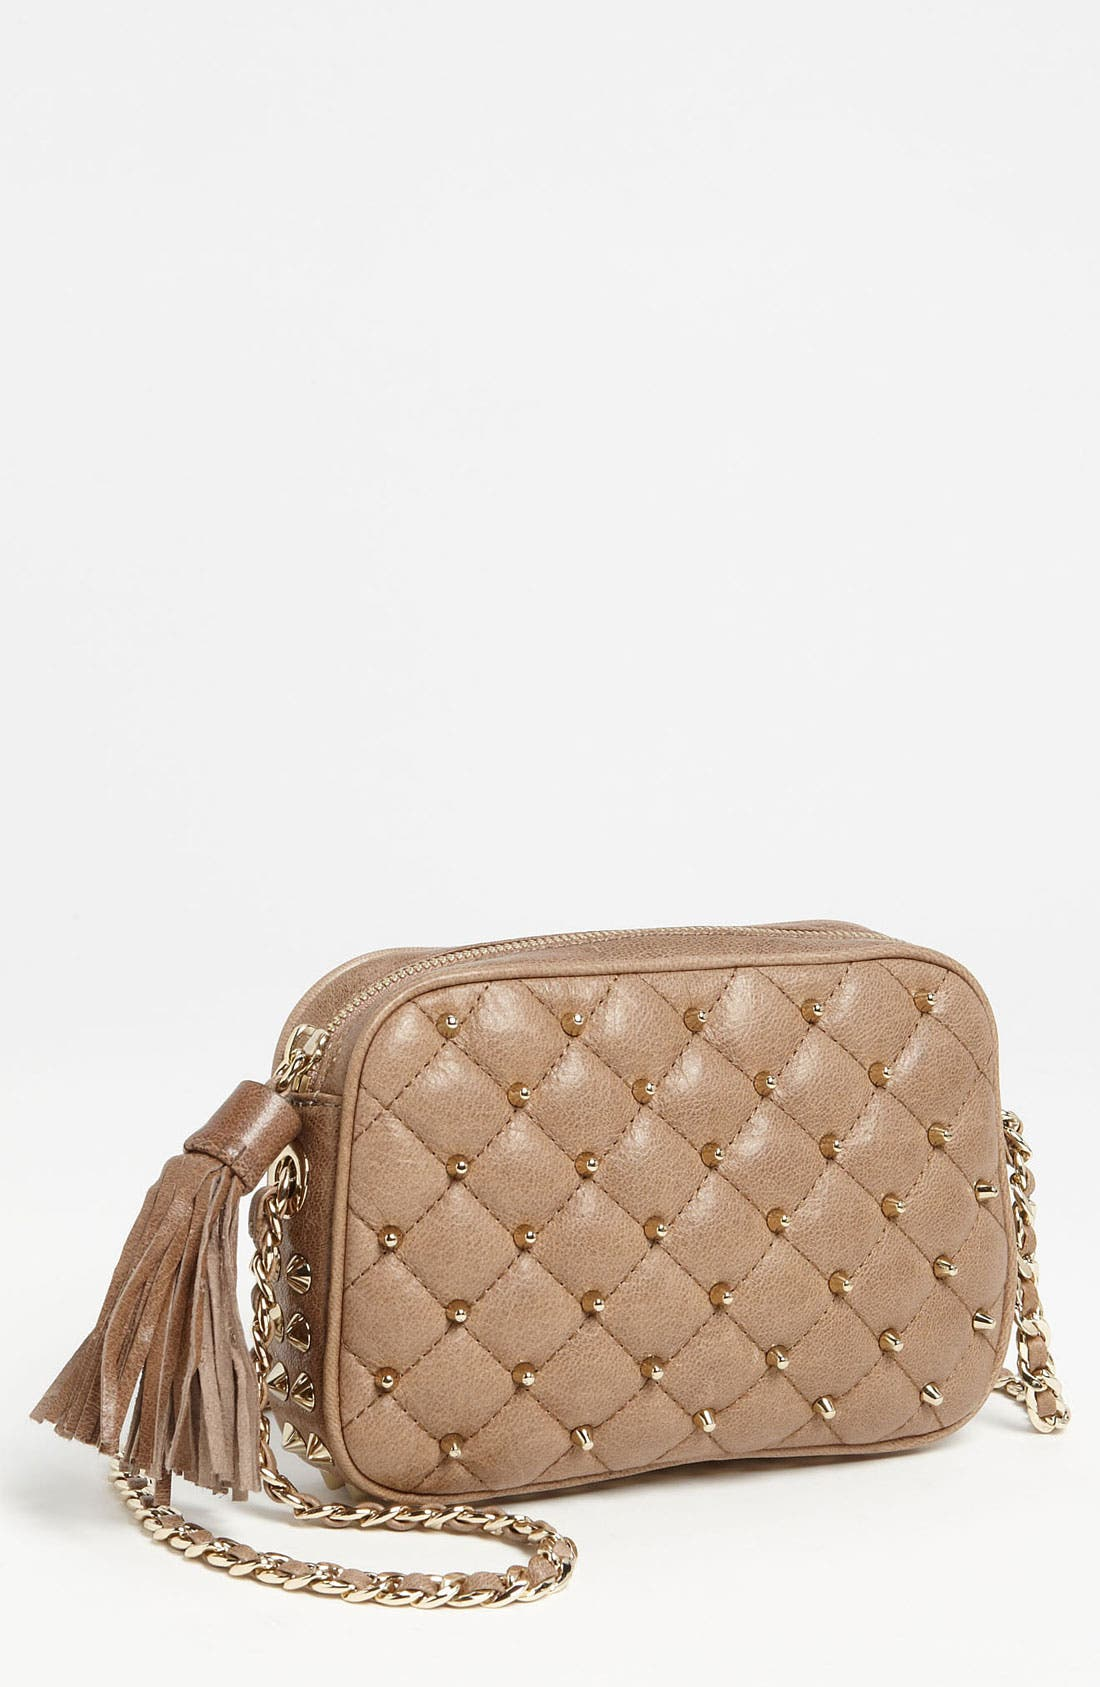 Alternate Image 1 Selected - Rebecca Minkoff 'Flirty' Crossbody Bag